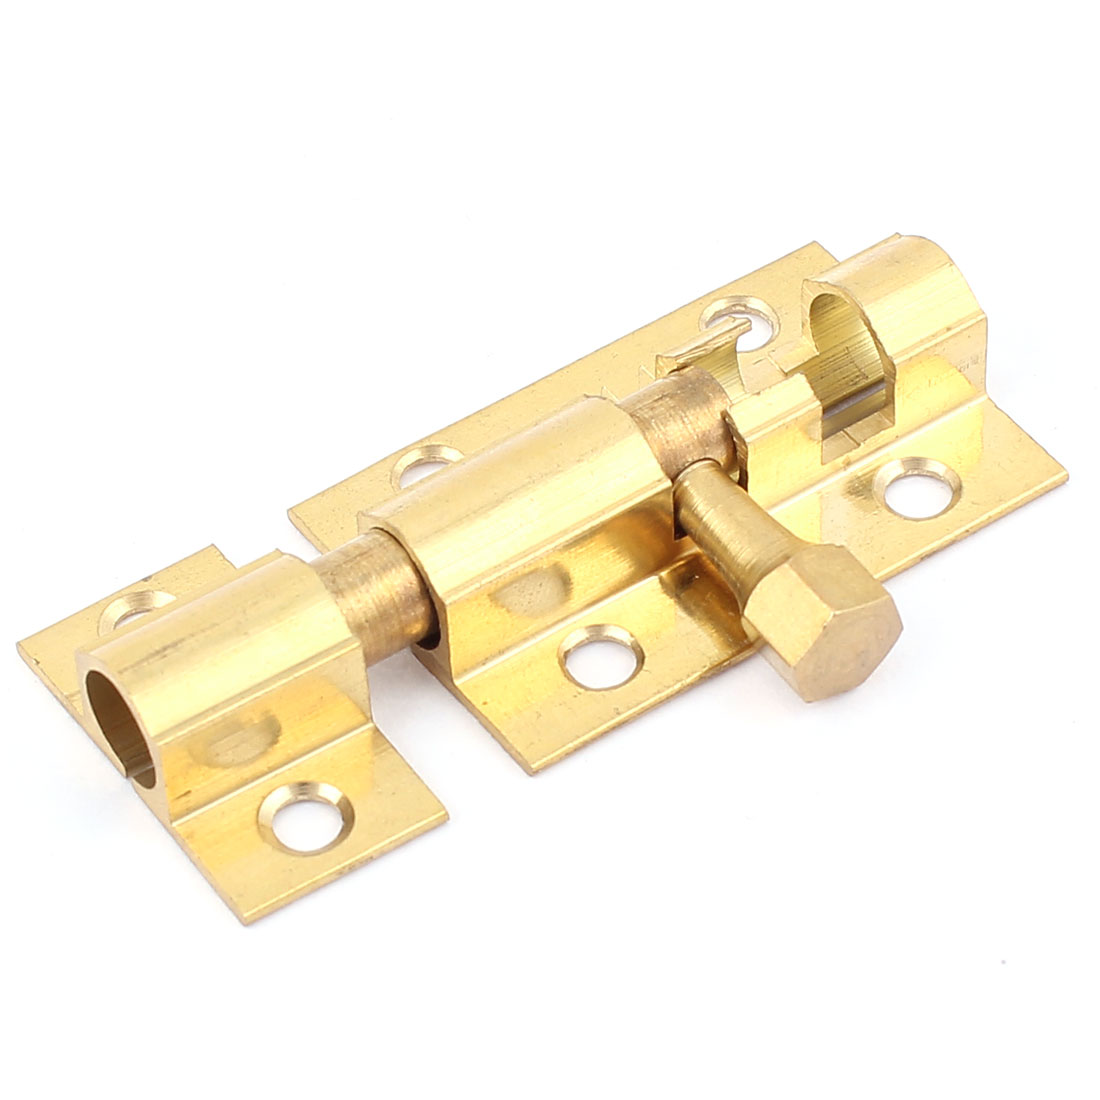 "1.5"" Long Brass Door Security Latch Sliding Lock Barrel Bolt Gold Tone"